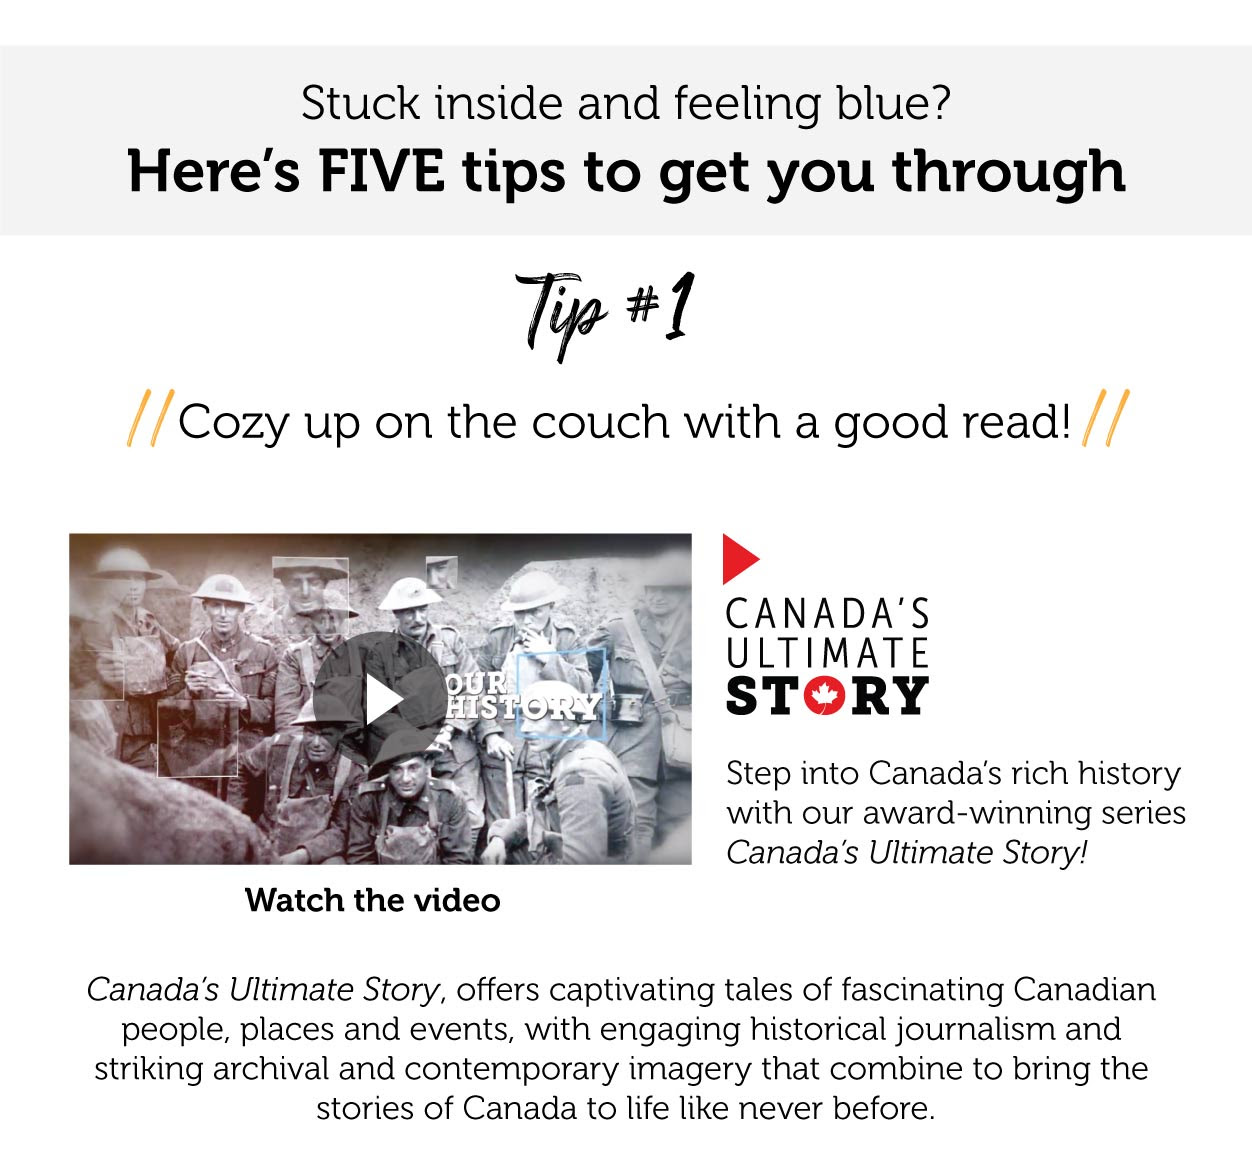 Watch the video - Canada's Ultimate Story